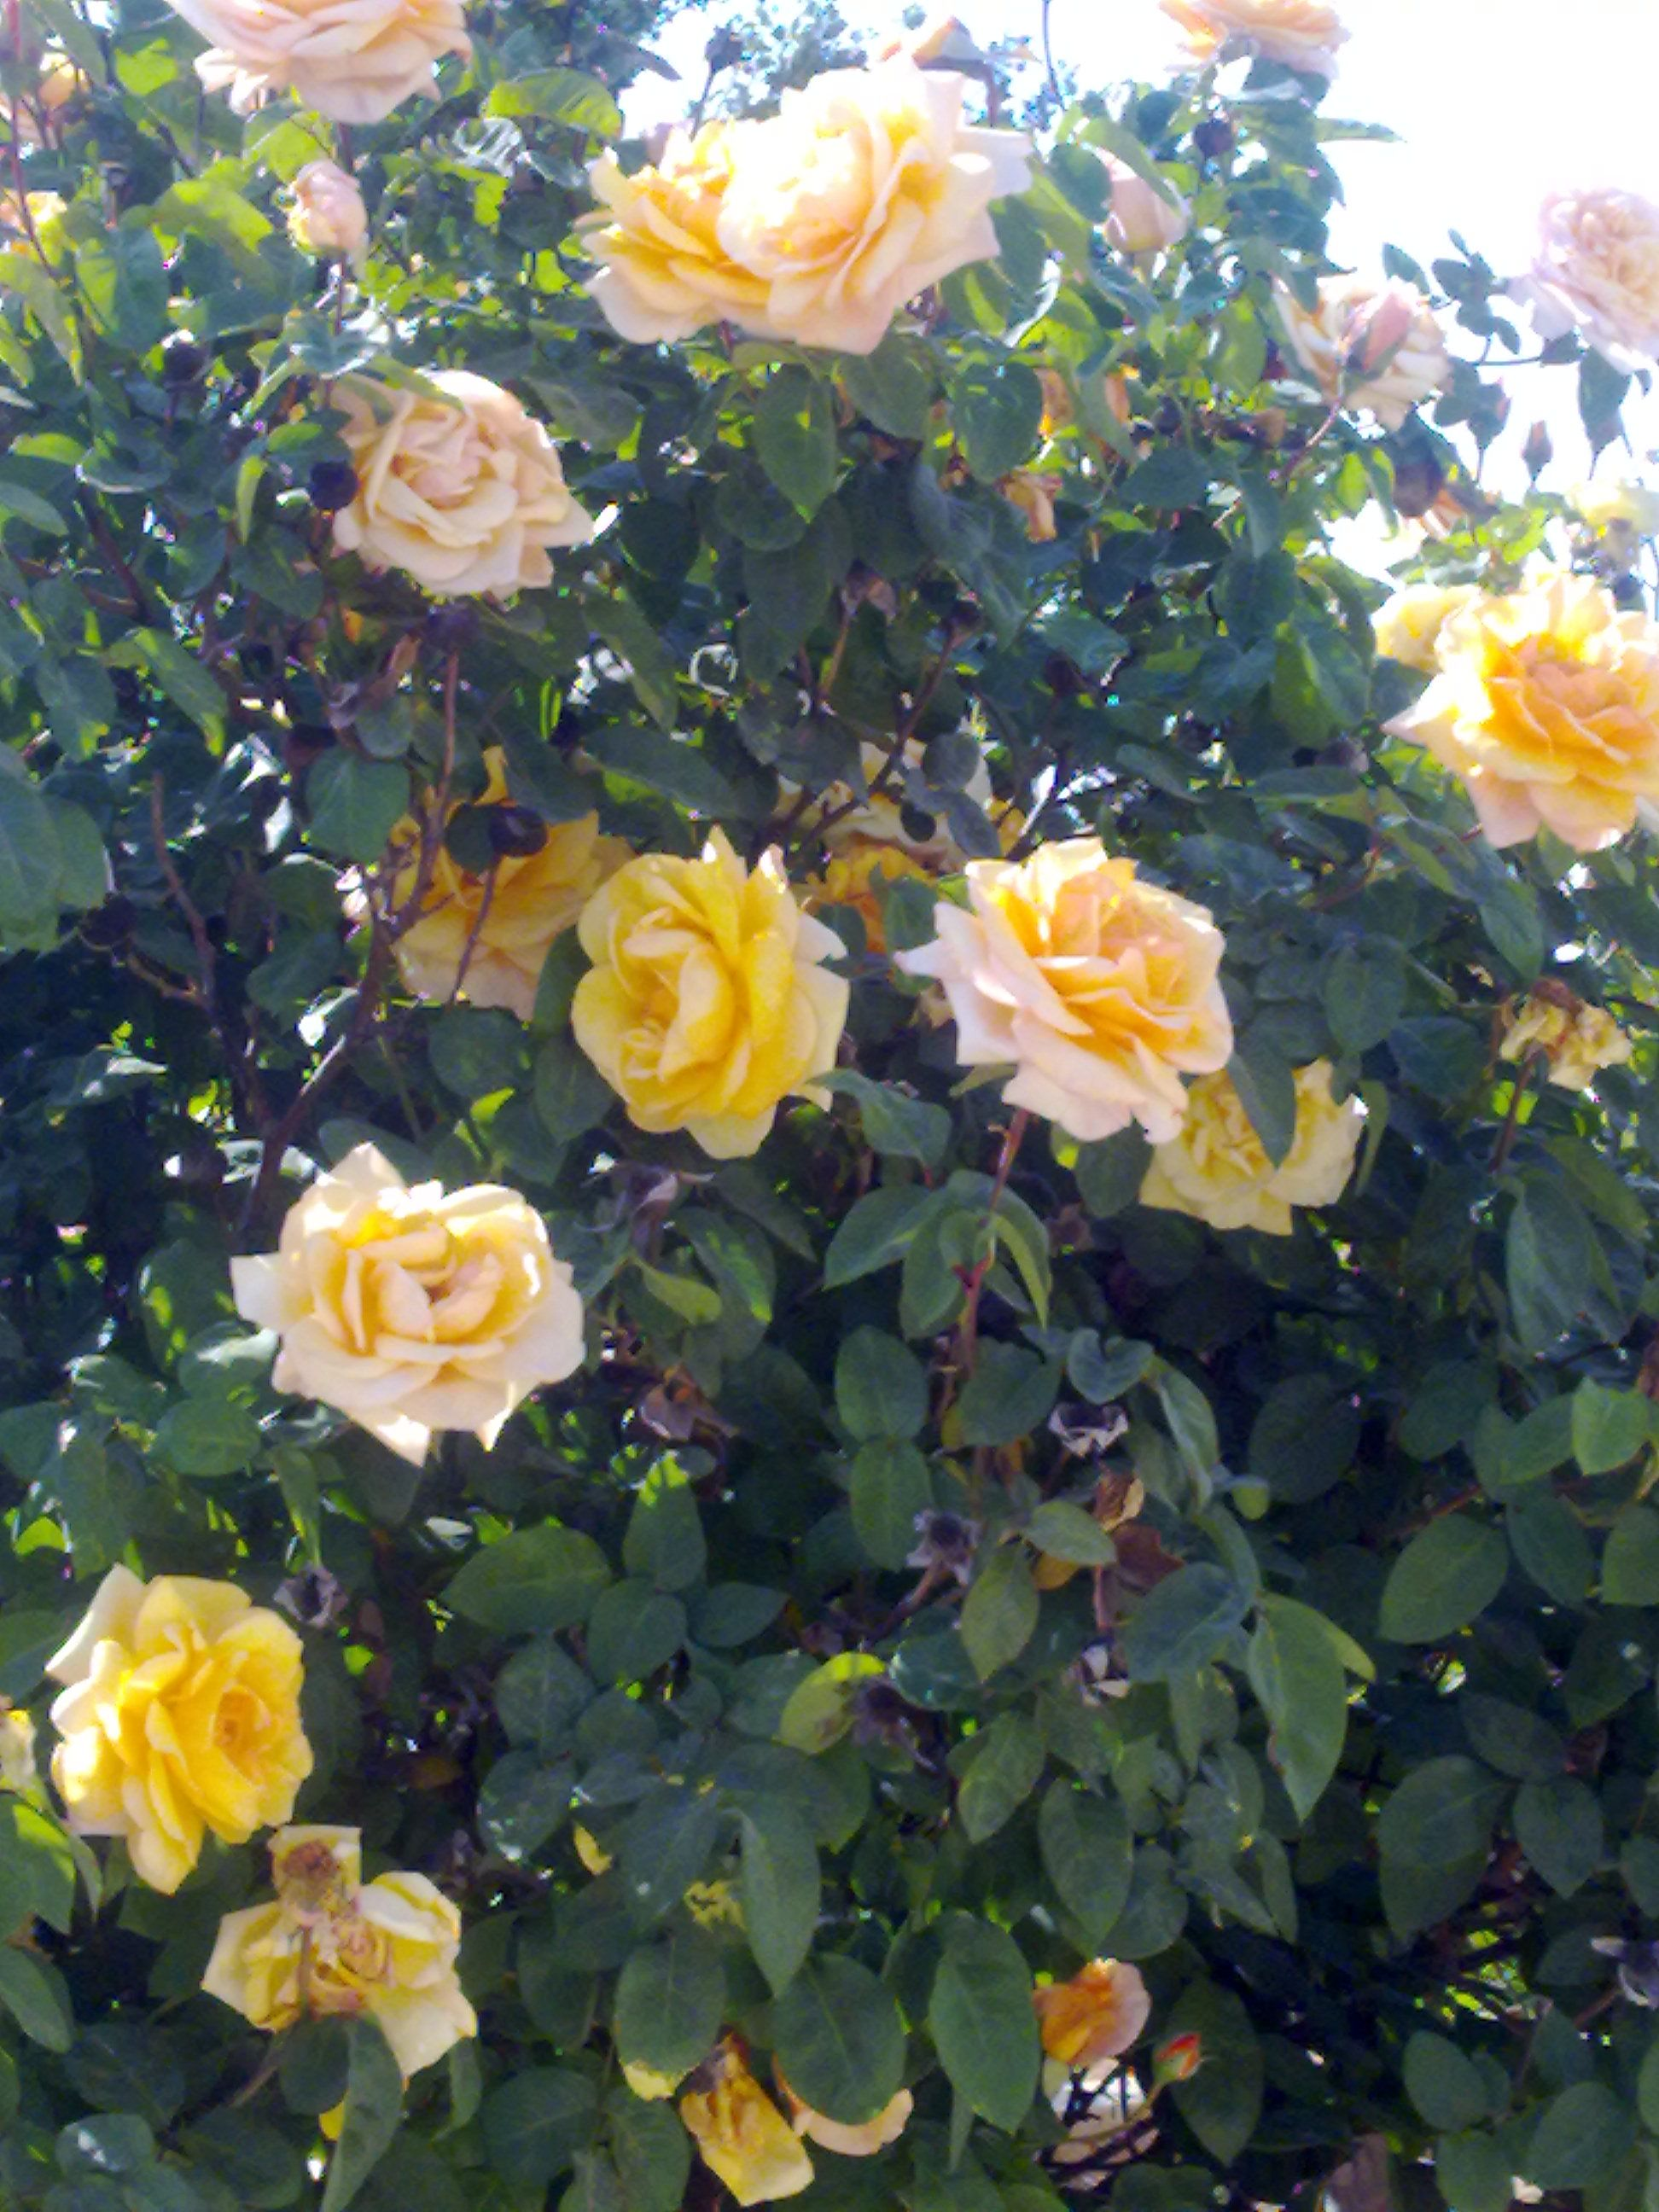 I want lots of yellow rose bushes in my yard. Love yellow